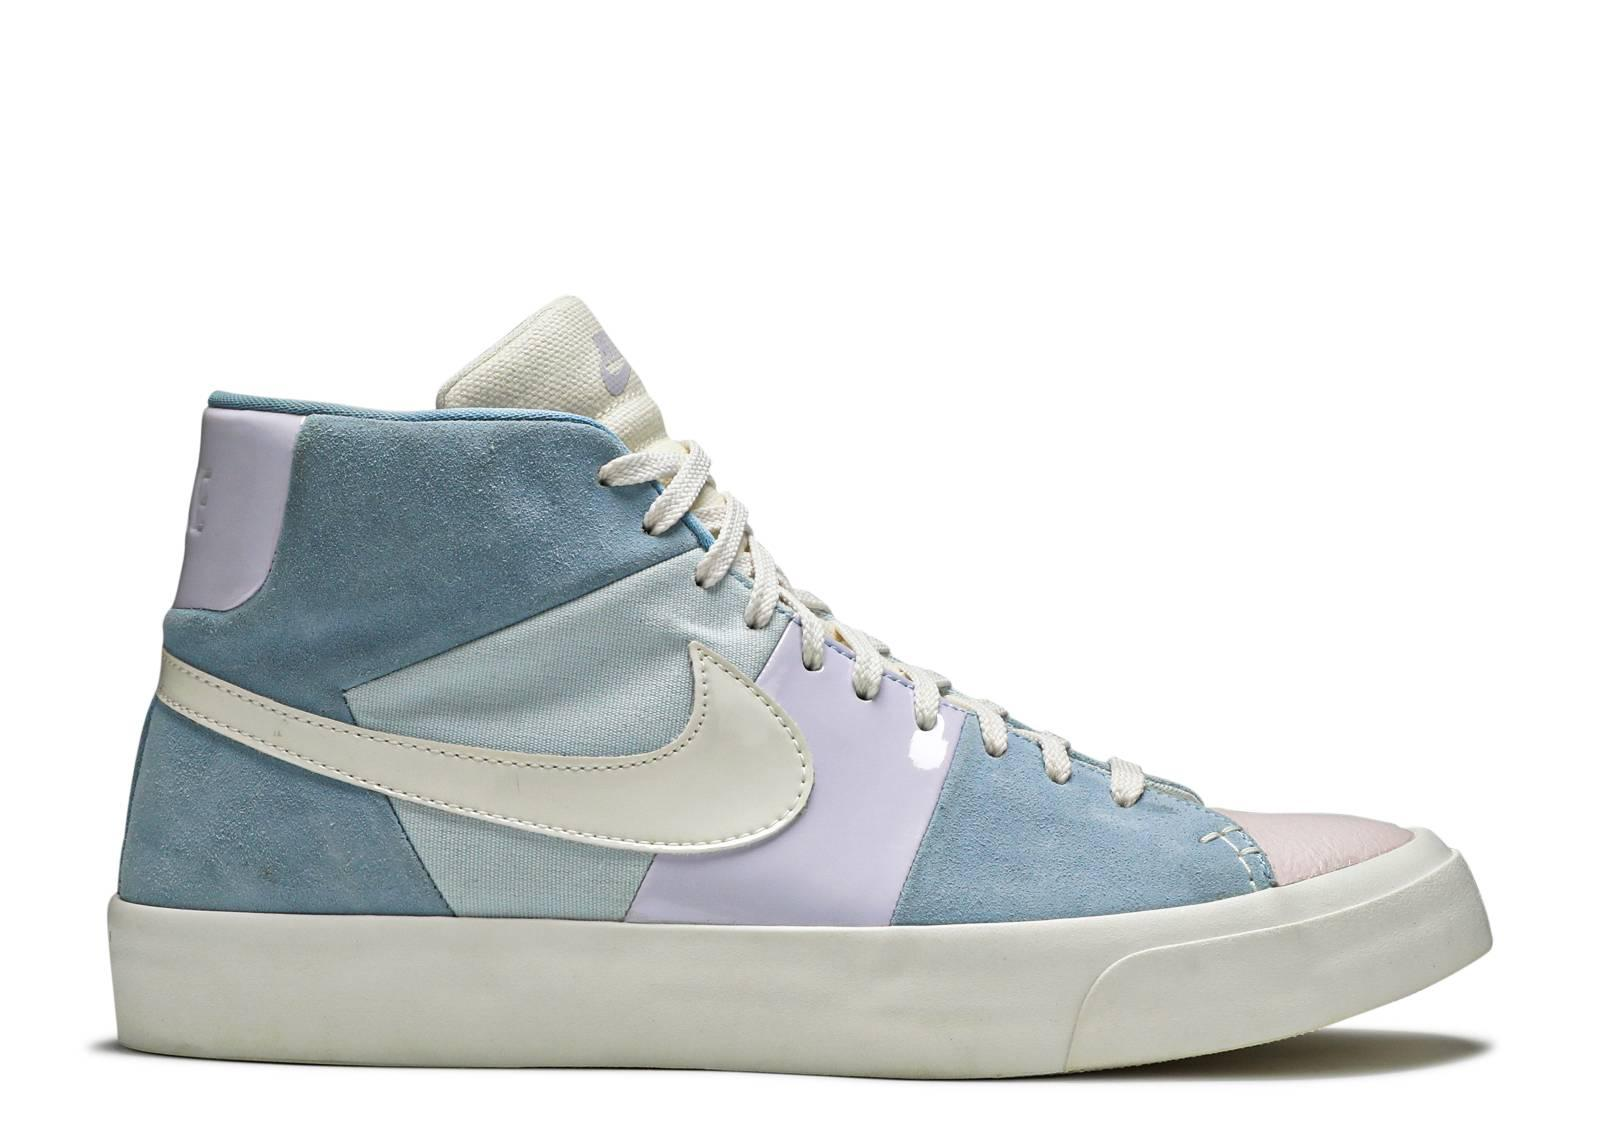 Perfecto Eliminación Joseph Banks  Nike Blazer Royal Easter Qs 'easter 2018' Shoes - Size 9.5 in Real Blue  (Blue) for Men - Save 89% - Lyst